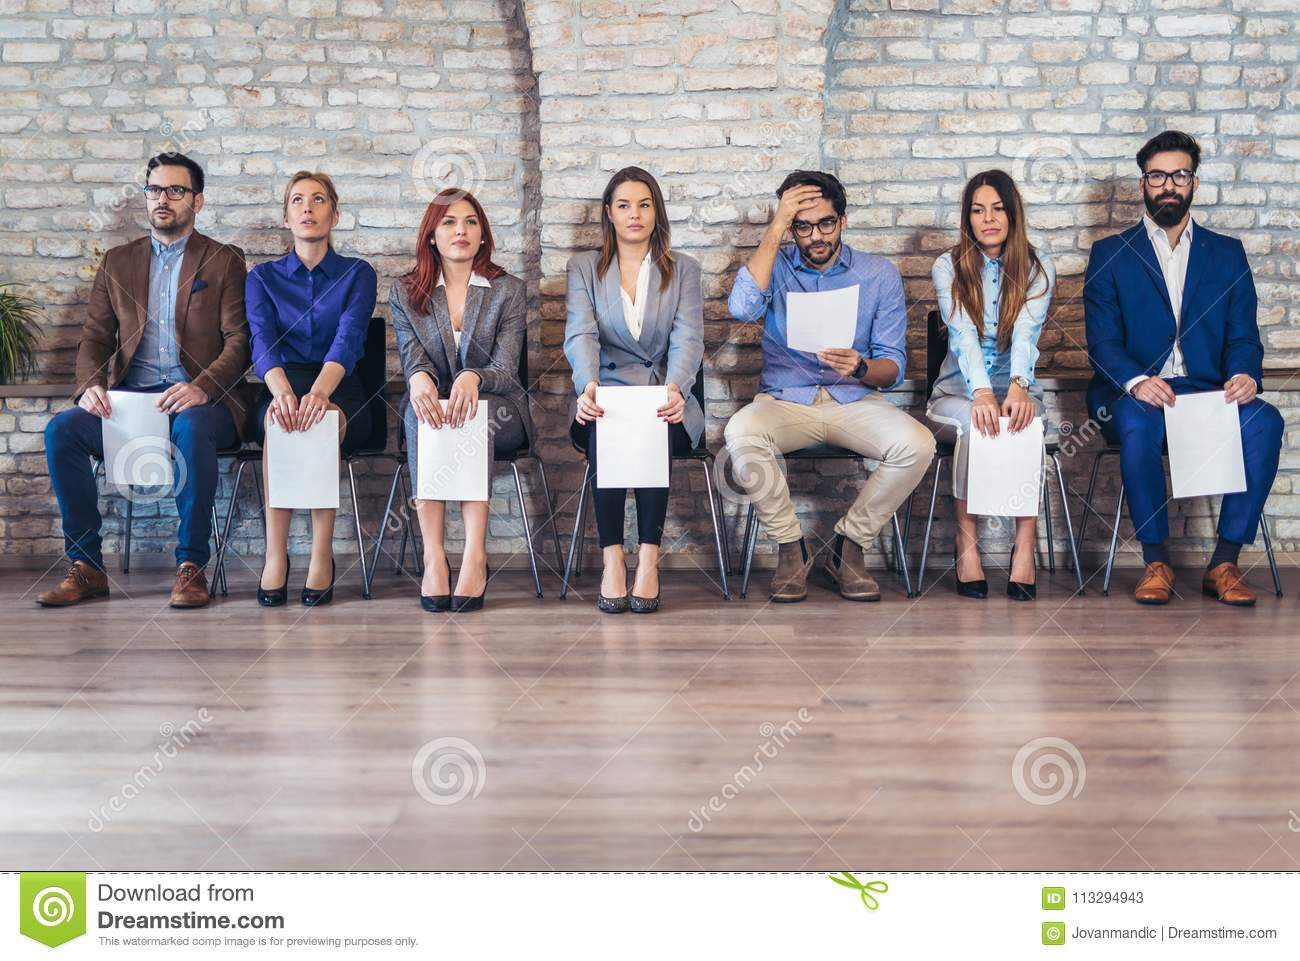 Photo of candidates waiting for a job interview